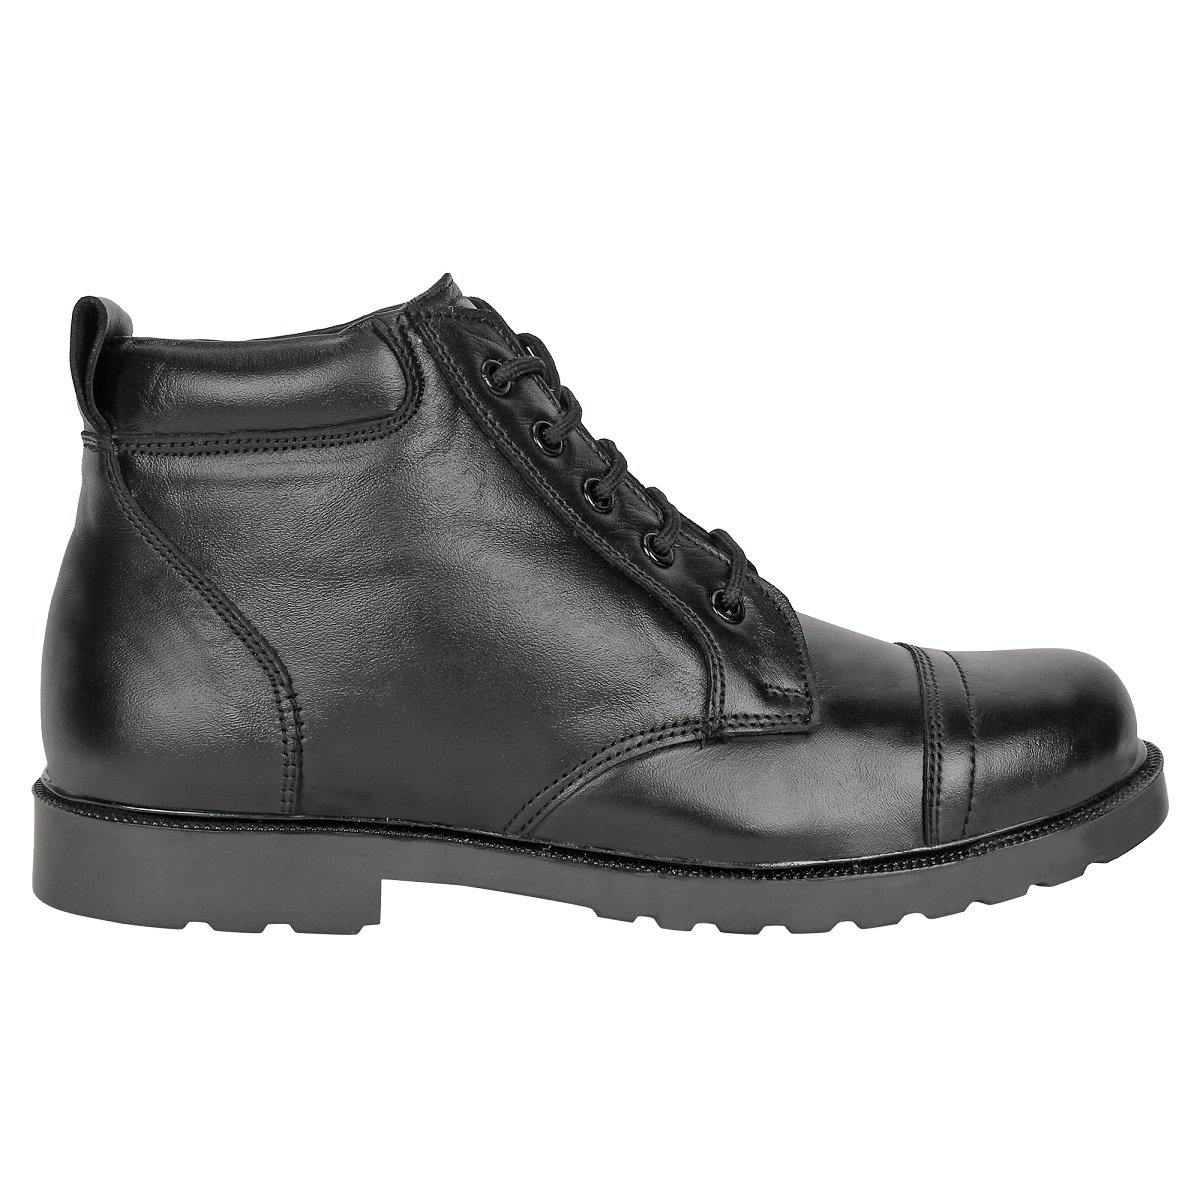 RoarKing Leather Boots for Men